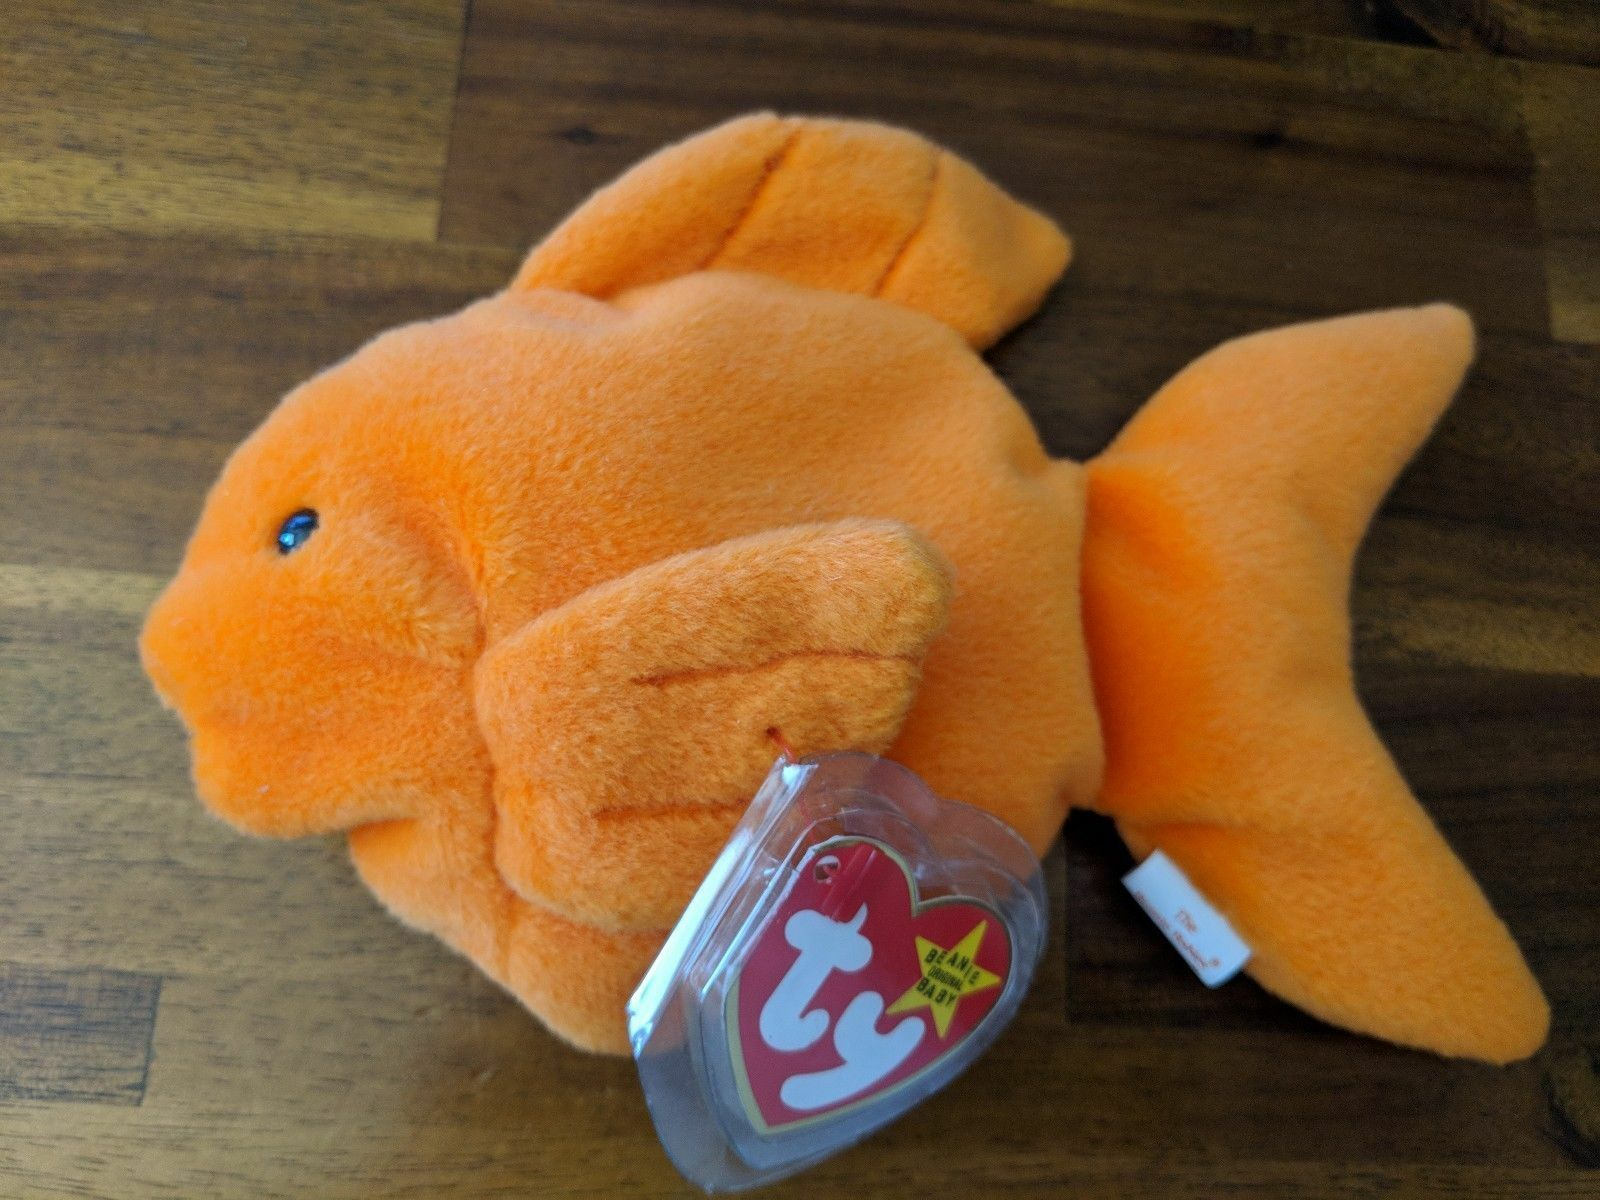 TY BEANIE BABY goldIE THE FISH orange ((RARE))  ((RETIRED)) WITH ERRORS